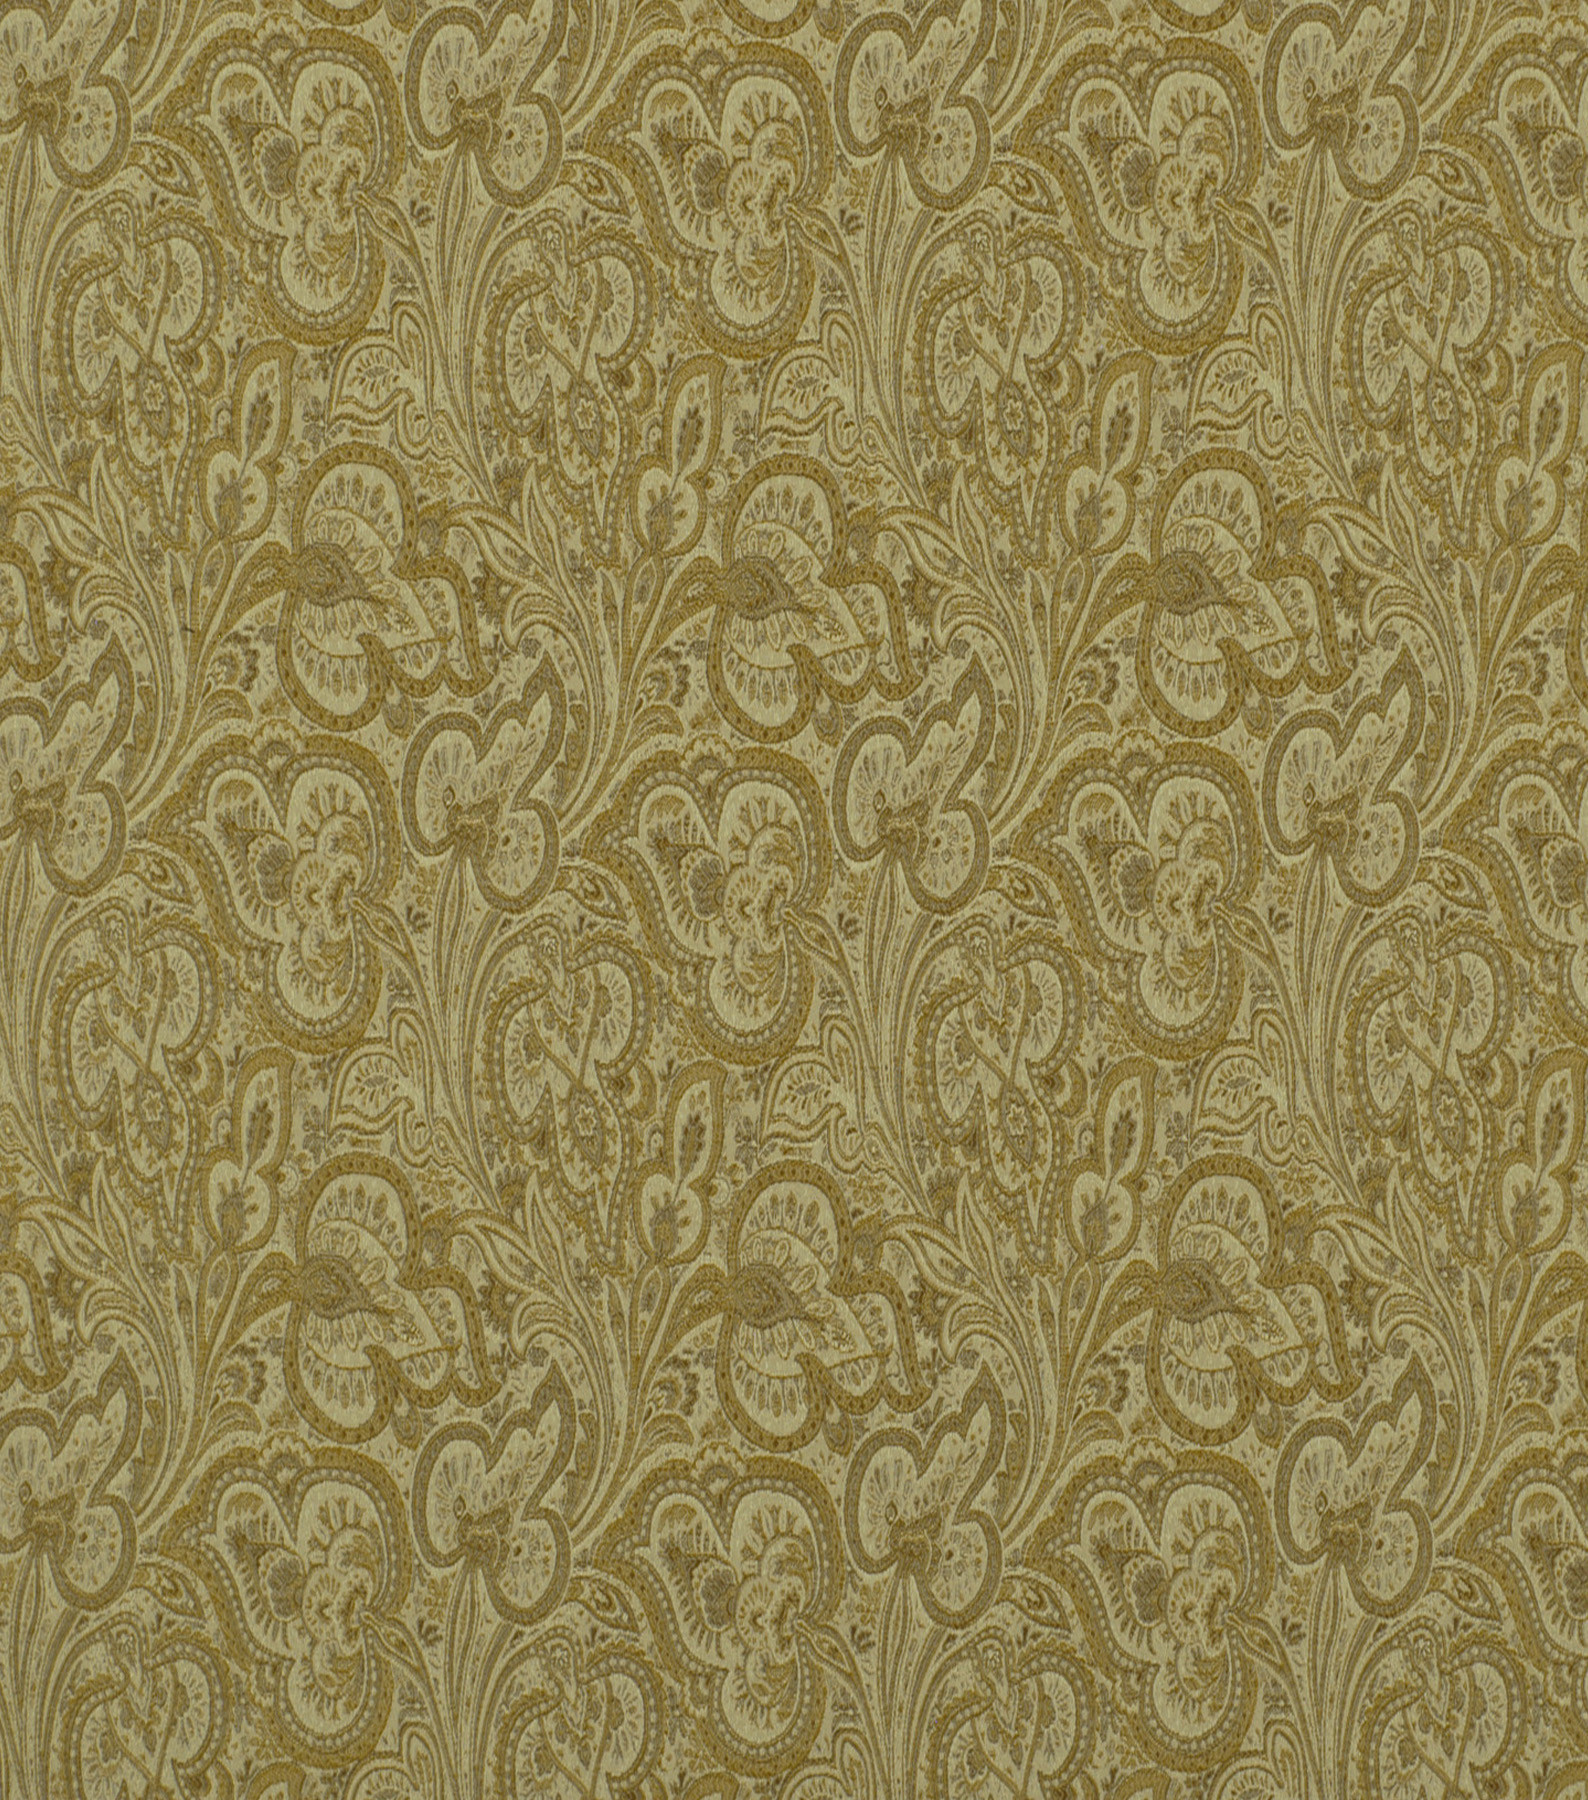 Home Decor 8\u0022x8\u0022 Fabric Swatch-Solid Fabric Robert Allen Paisley Fleur Pearl